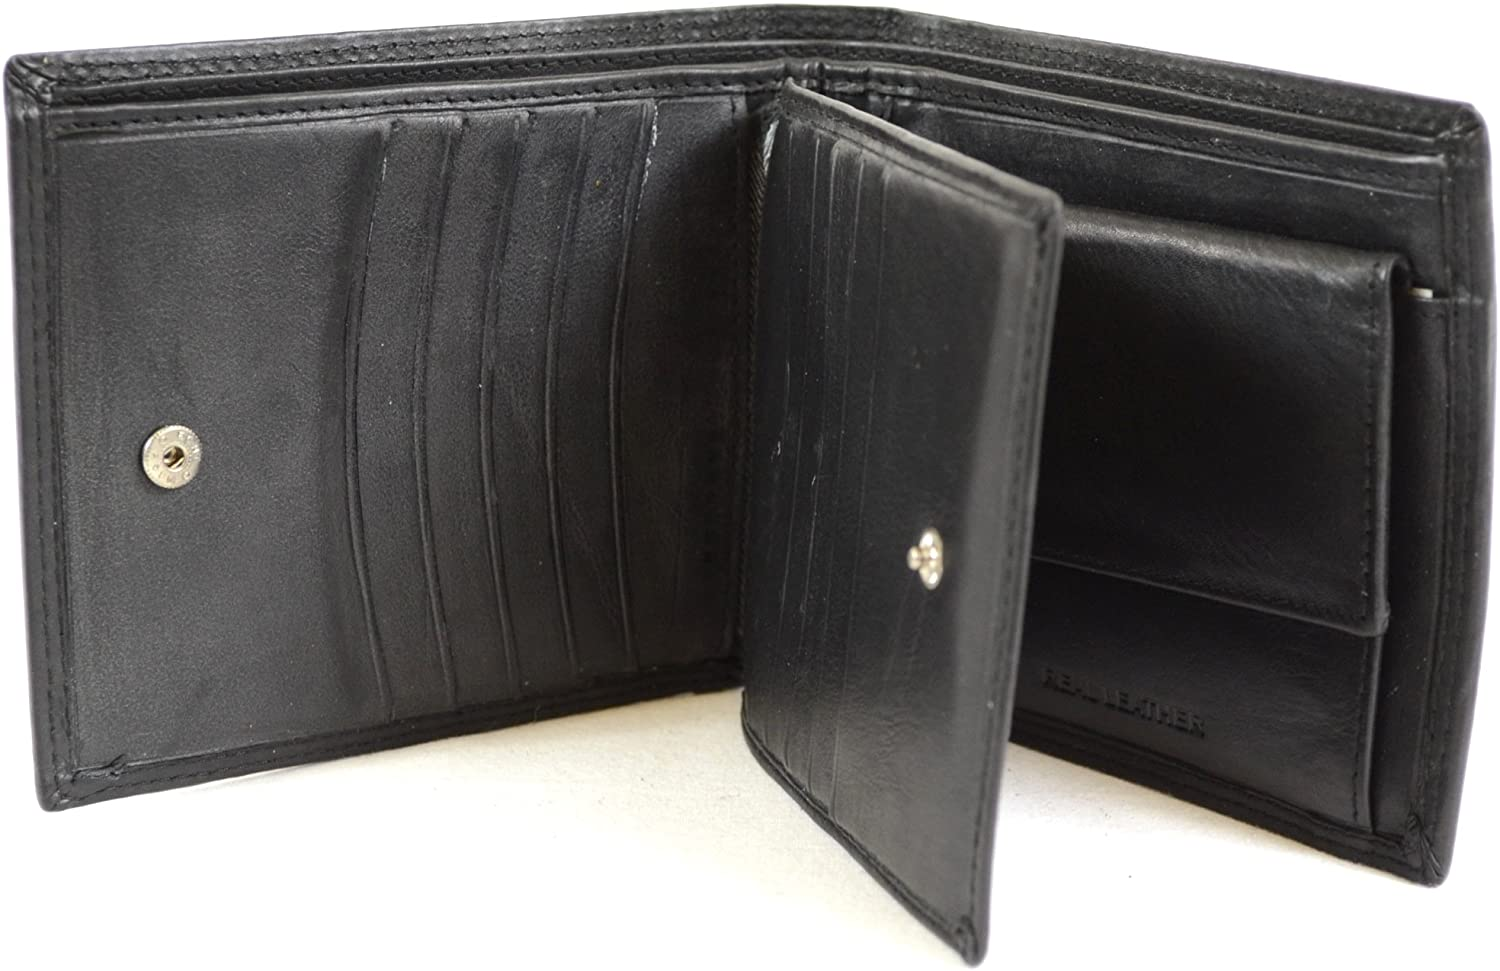 Men's Soft Leather Wallet with Multiple Card Slots and Pockets (Black, Dark Brown, Tan)